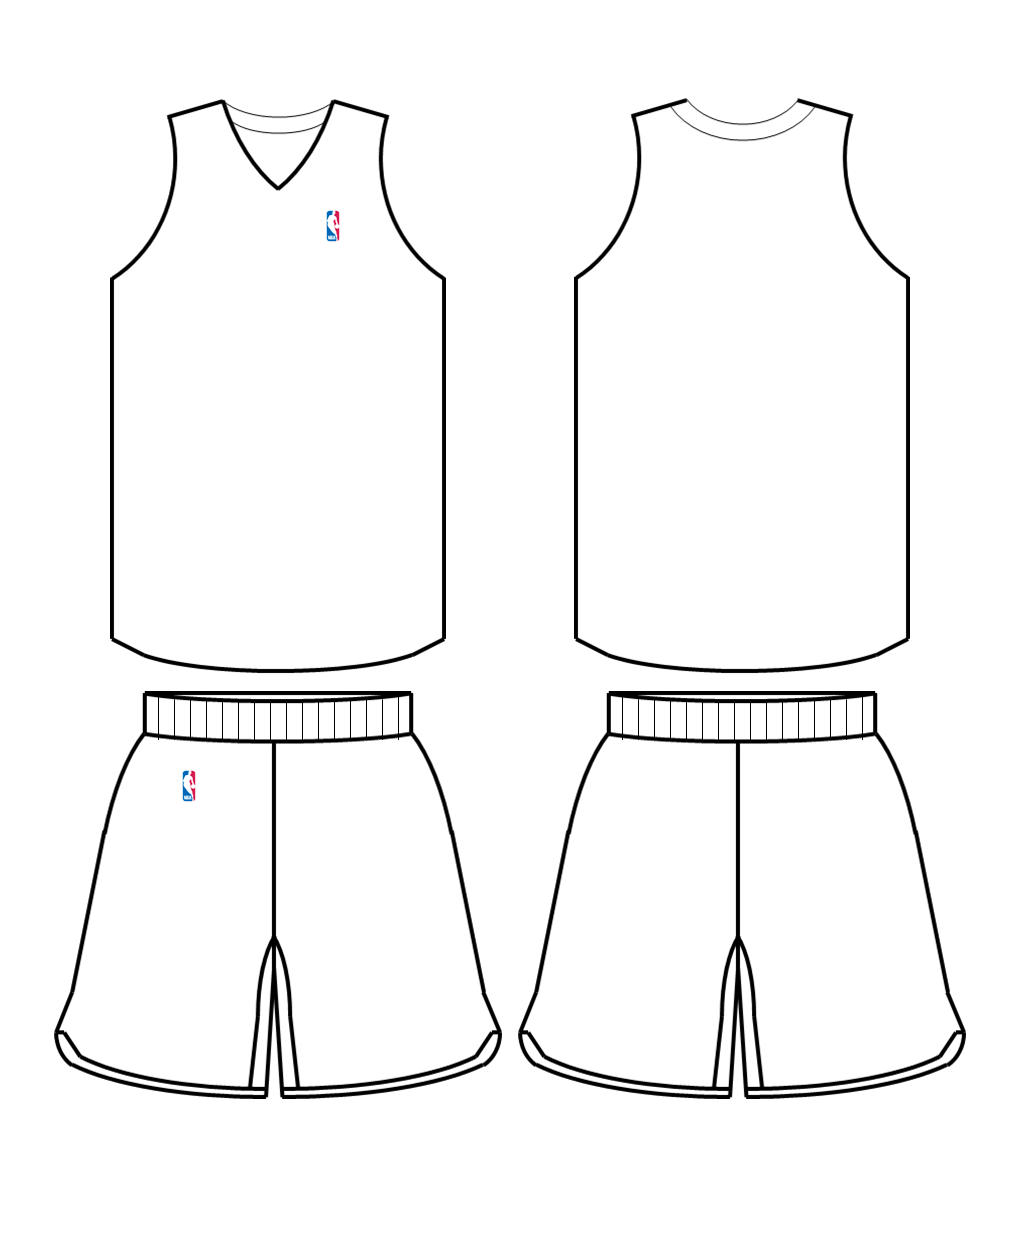 Free Blank Basketball Jersey Download Free Clip Art Free Clip Art On Clipart Library